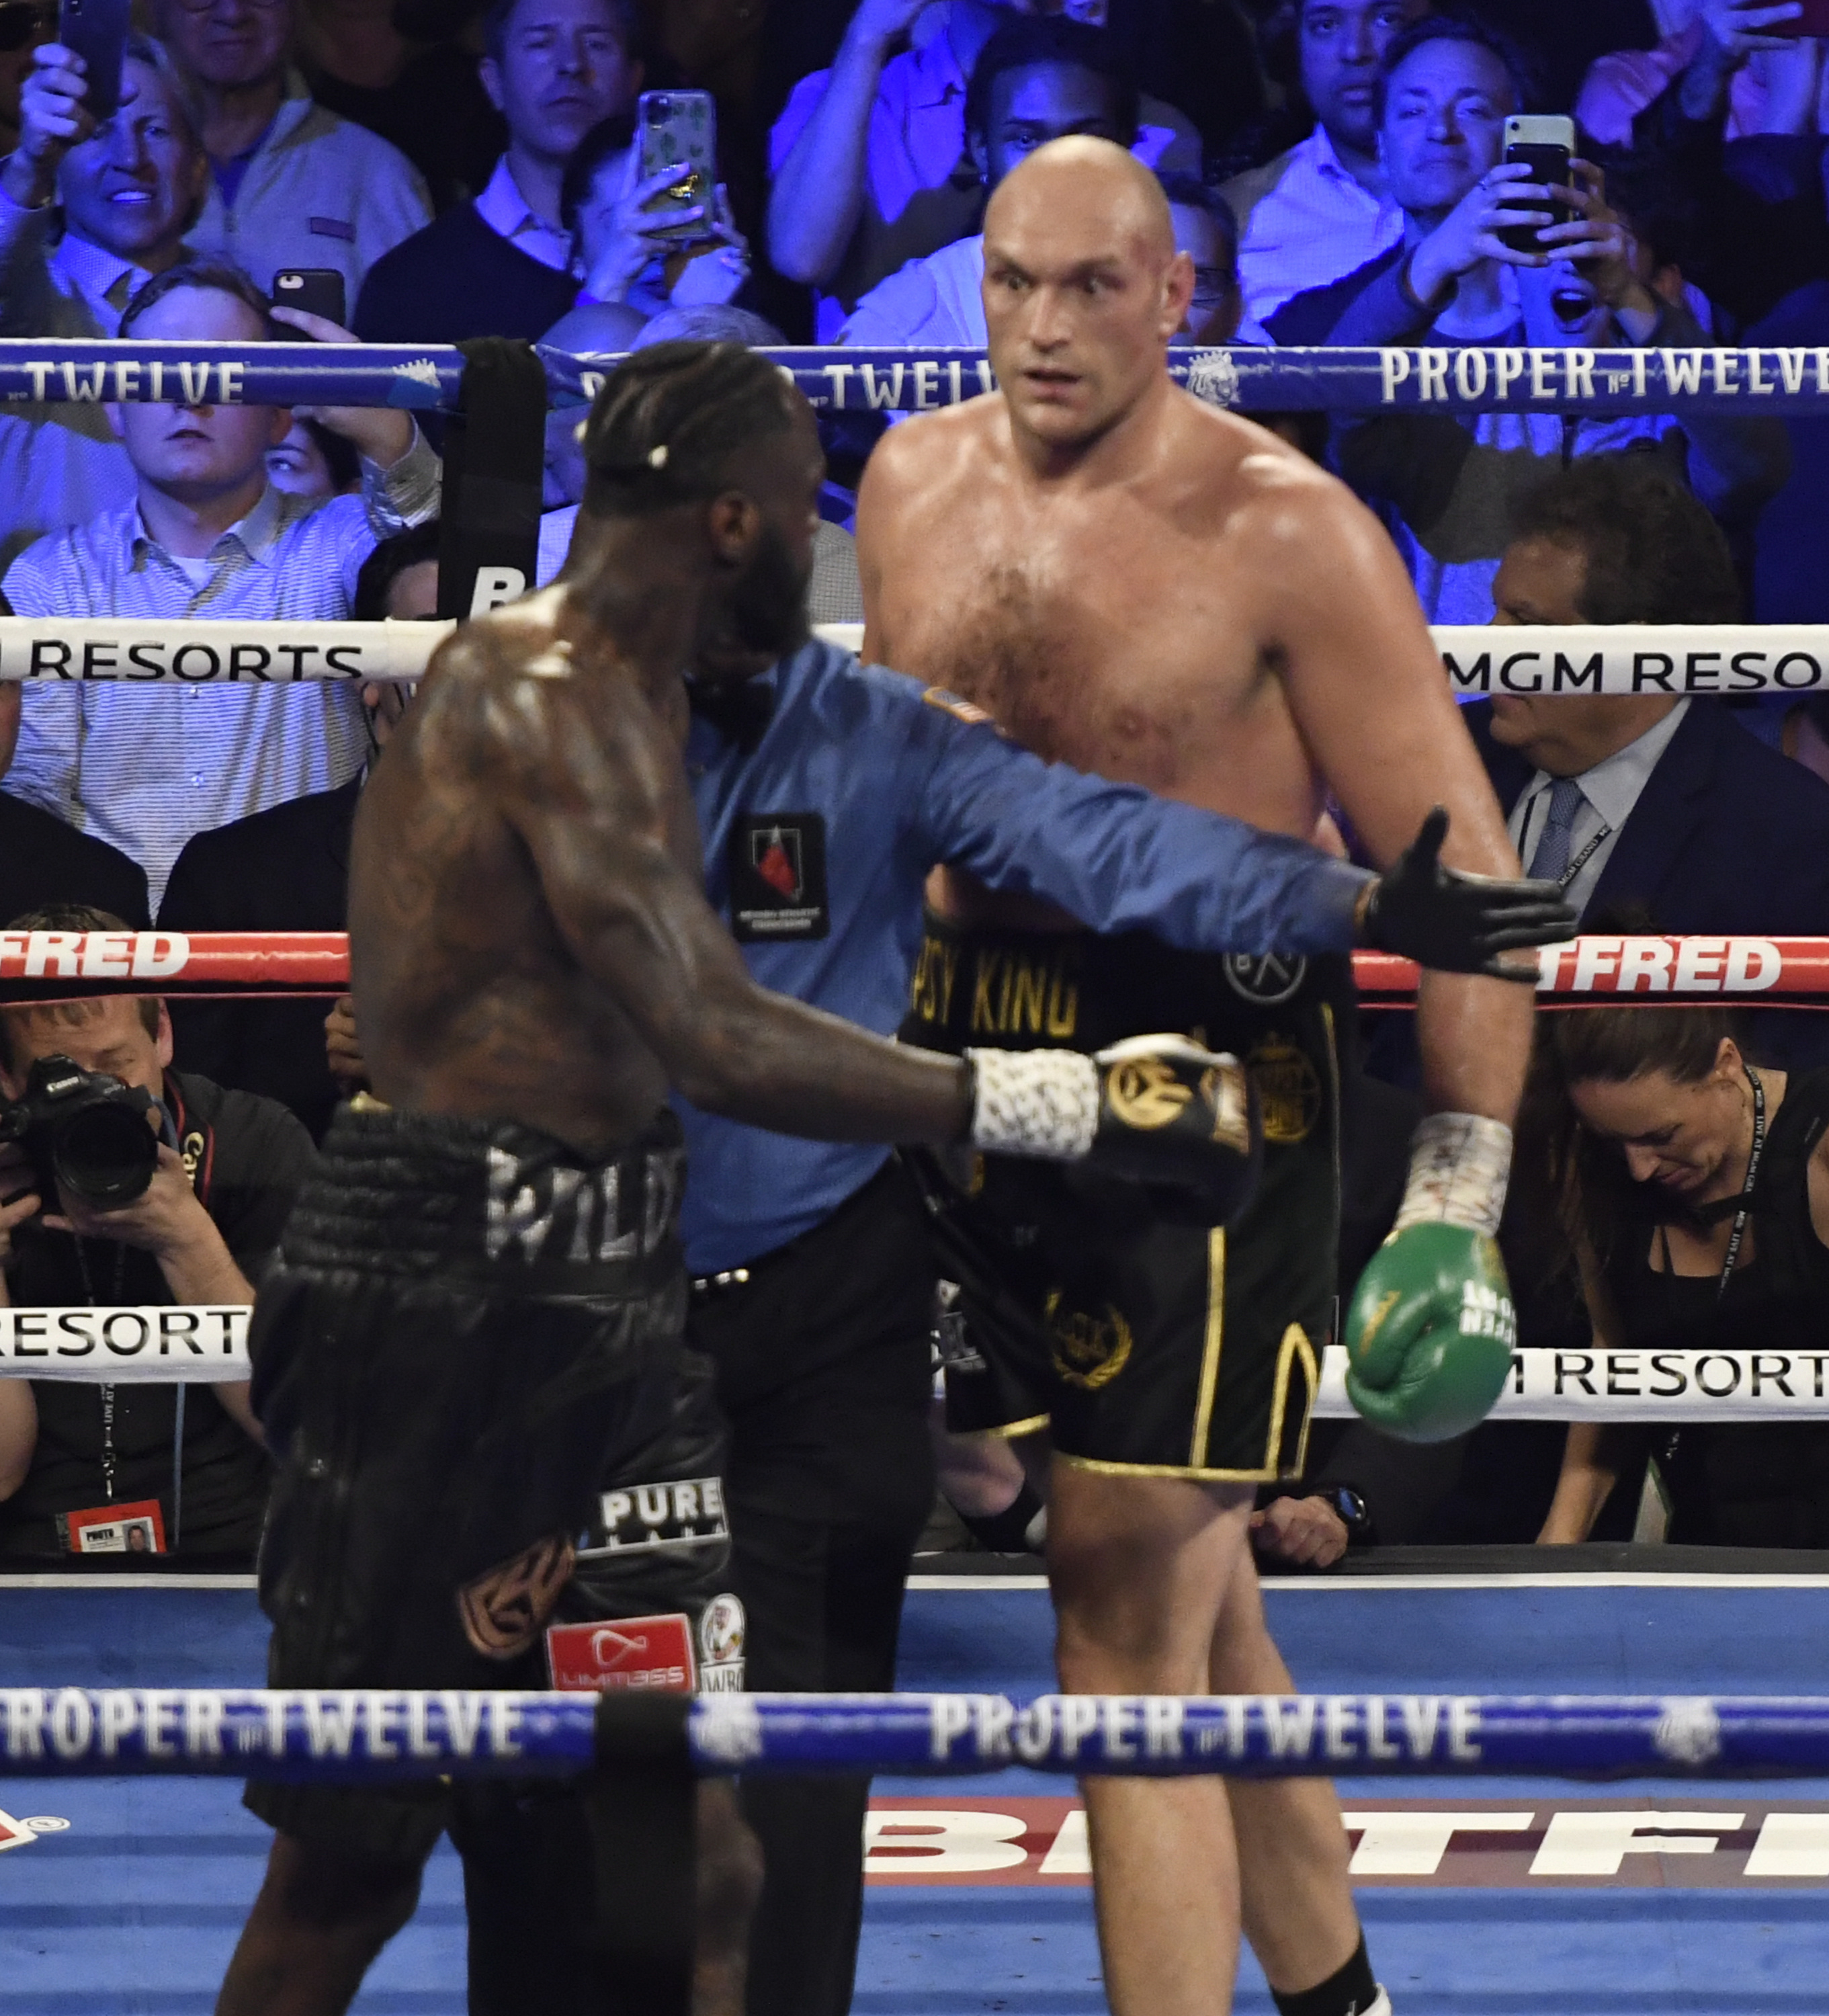 Tyson Fury is favored to stop Deontay Wilder again in their trilogy match